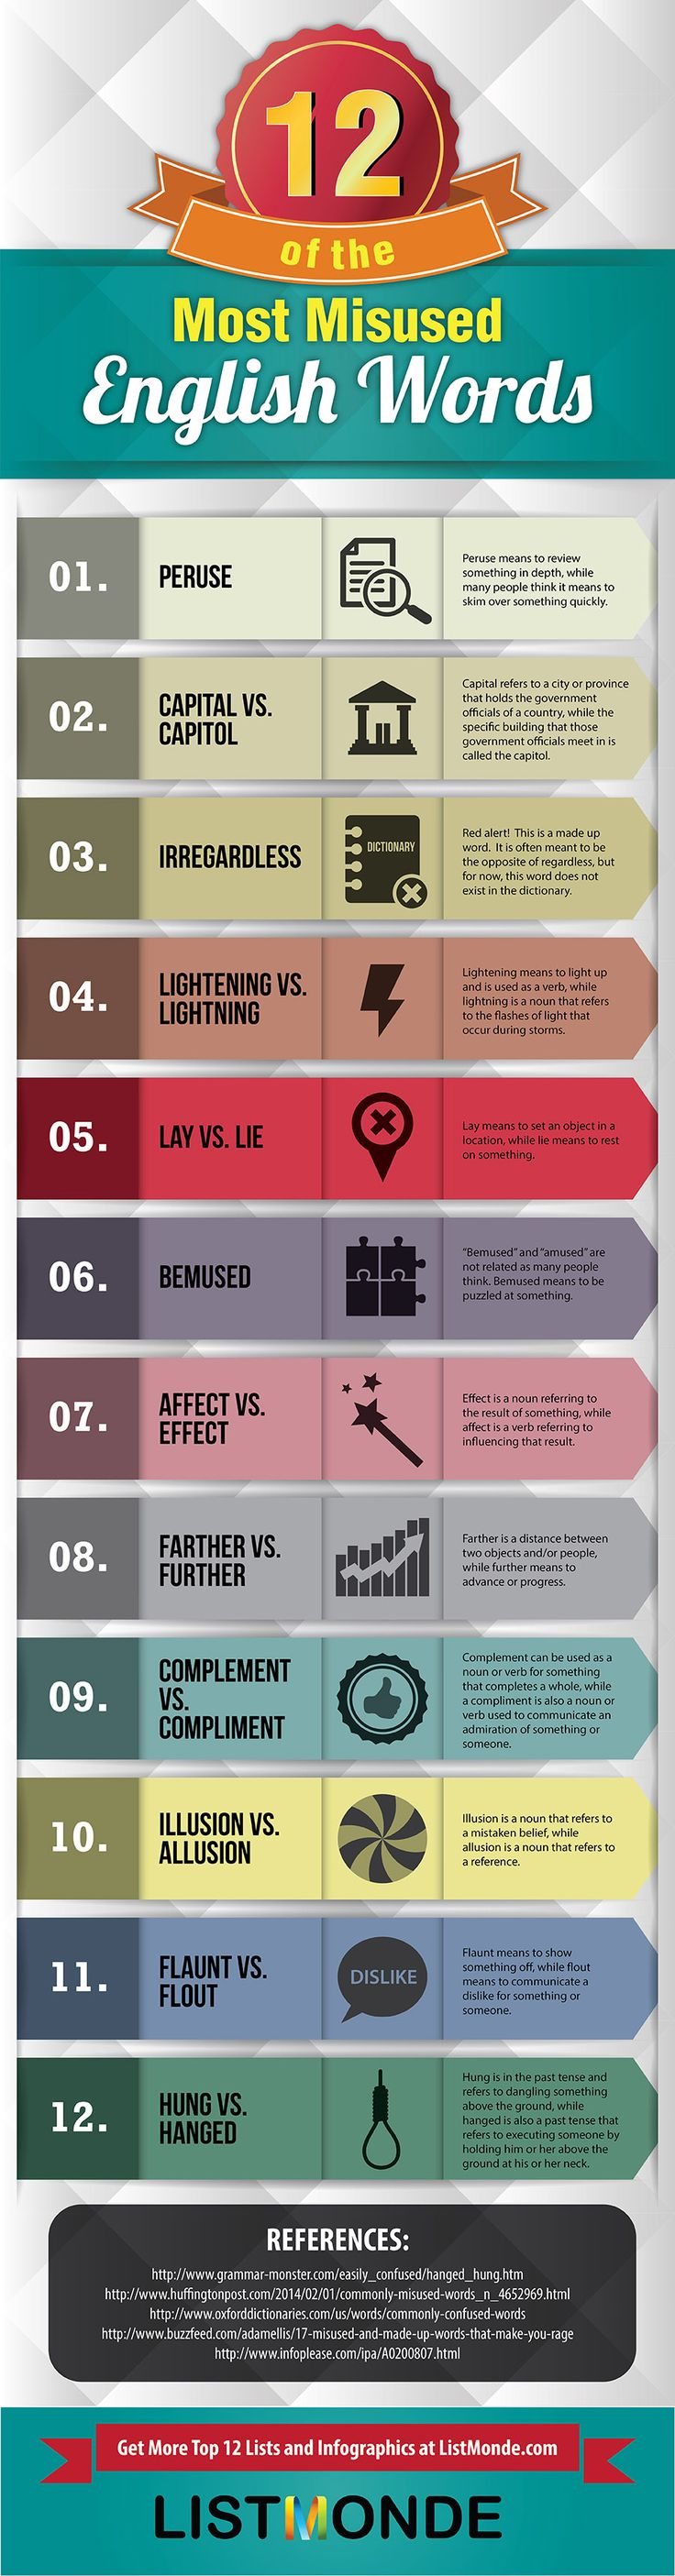 Good writers share many qualities, but simplicity and clarity are two of the most important. This infographic highlights some of the most commonly misused words in English. If you want to appear compe